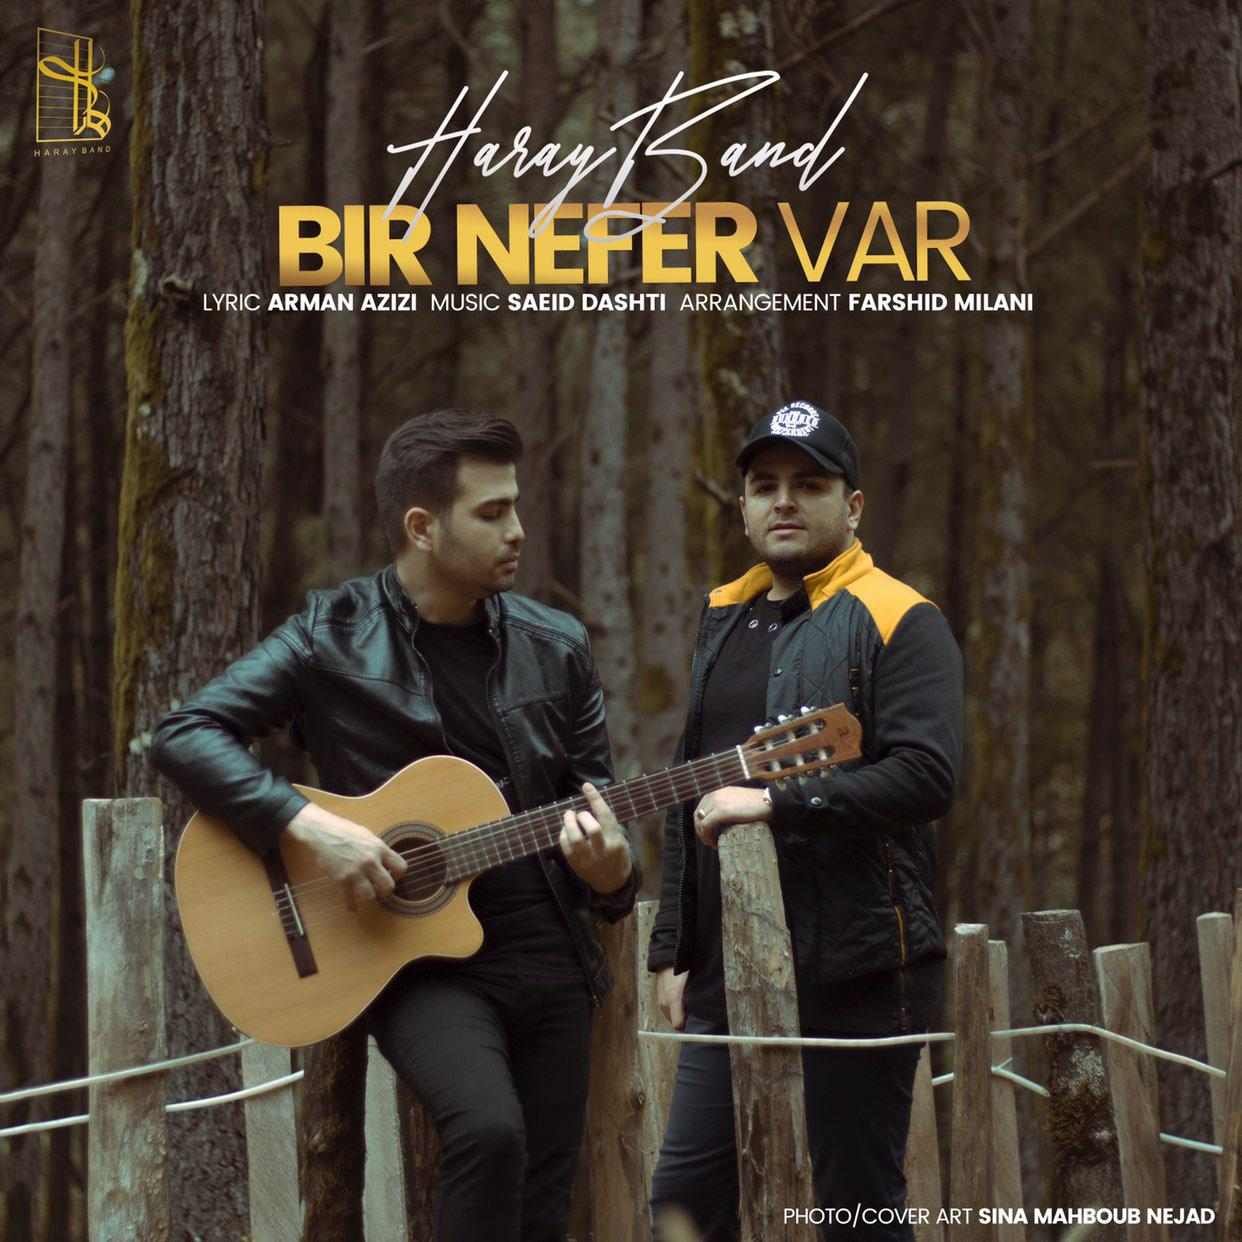 http://birtunes.ir/wp-content/uploads/2018/11/Haray-Band-Bir-Nefer-Var.jpg